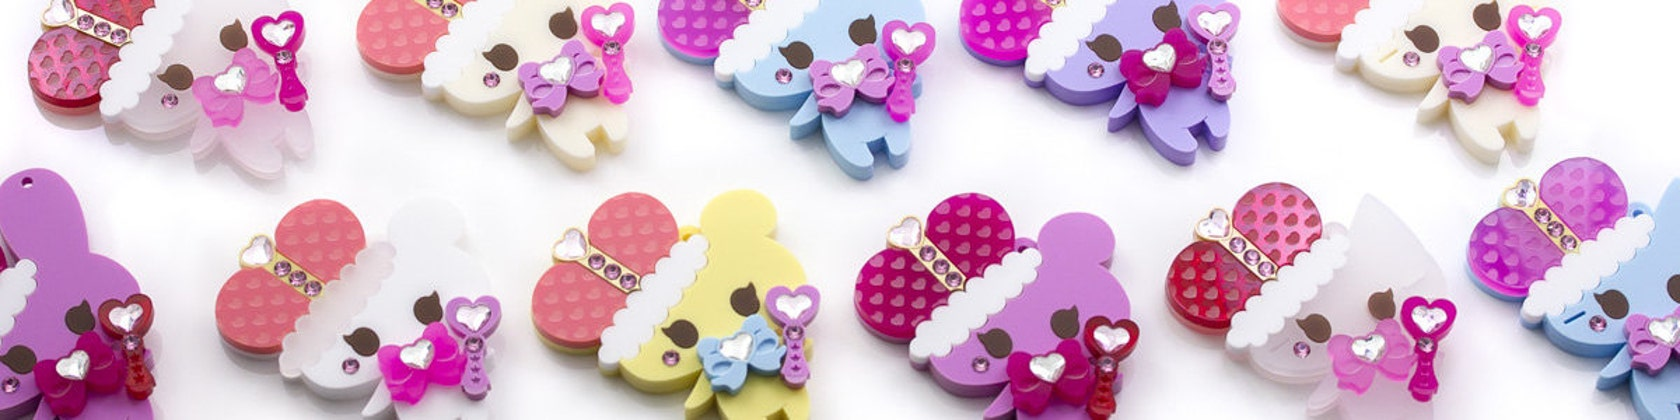 2673271620b Kuma Crafts: Super Cute and Fun Fashion Jewelry by kumacrafts